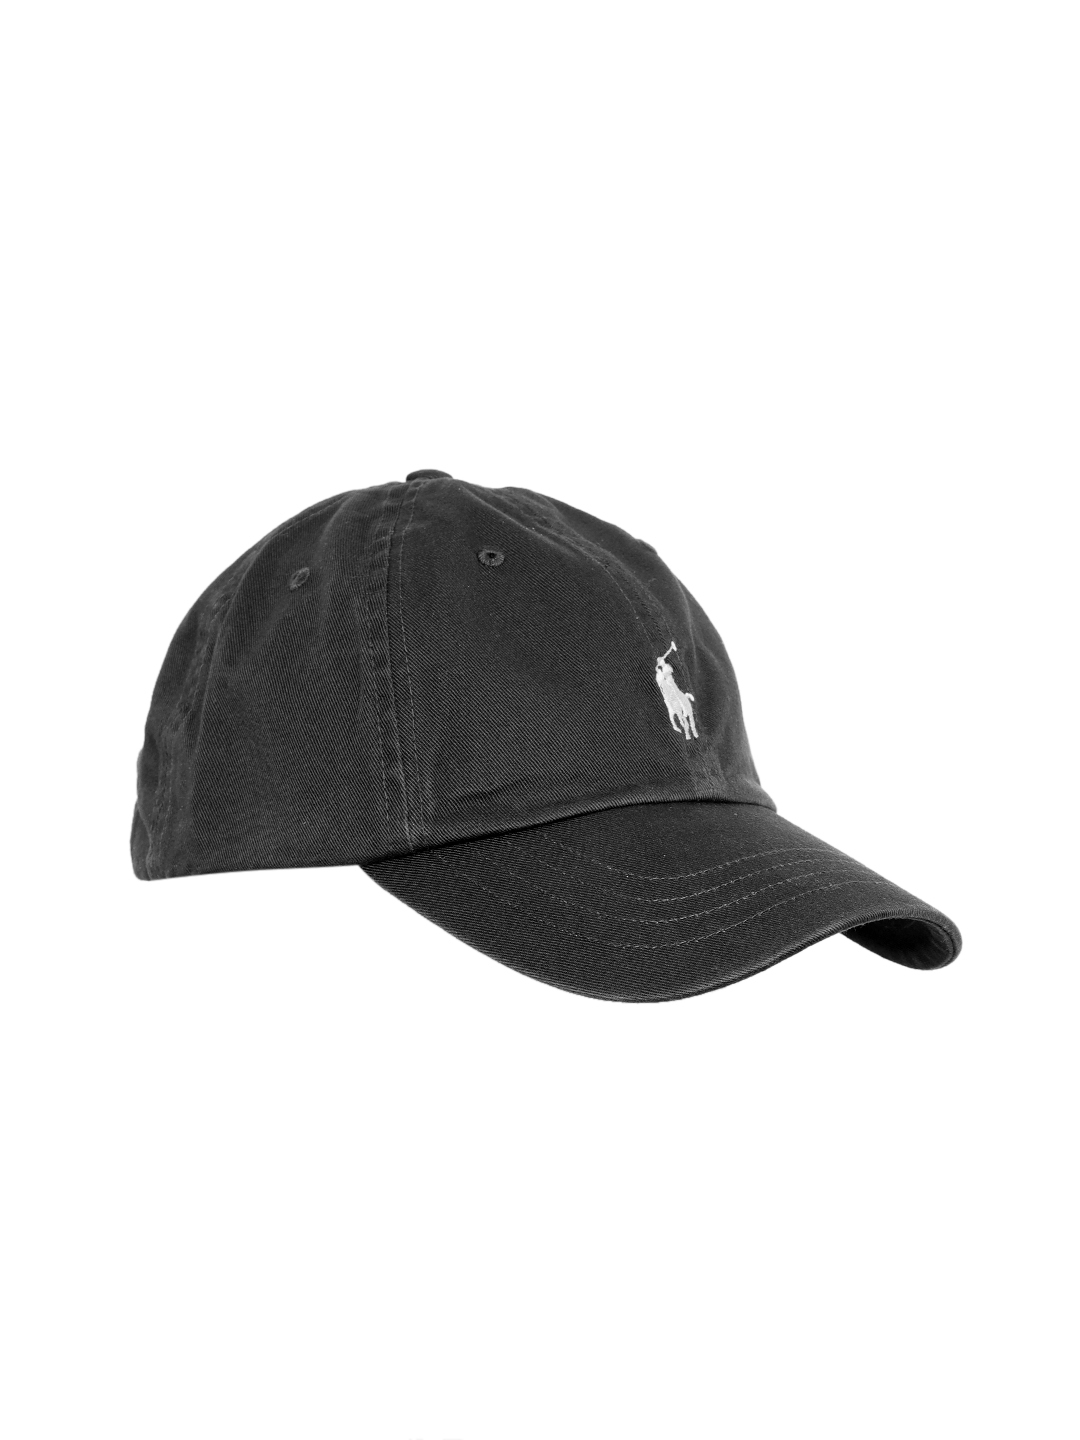 89a06744b9537 Buy Polo Ralph Lauren Men Charcoal Grey Solid Cap With Embroidered ...